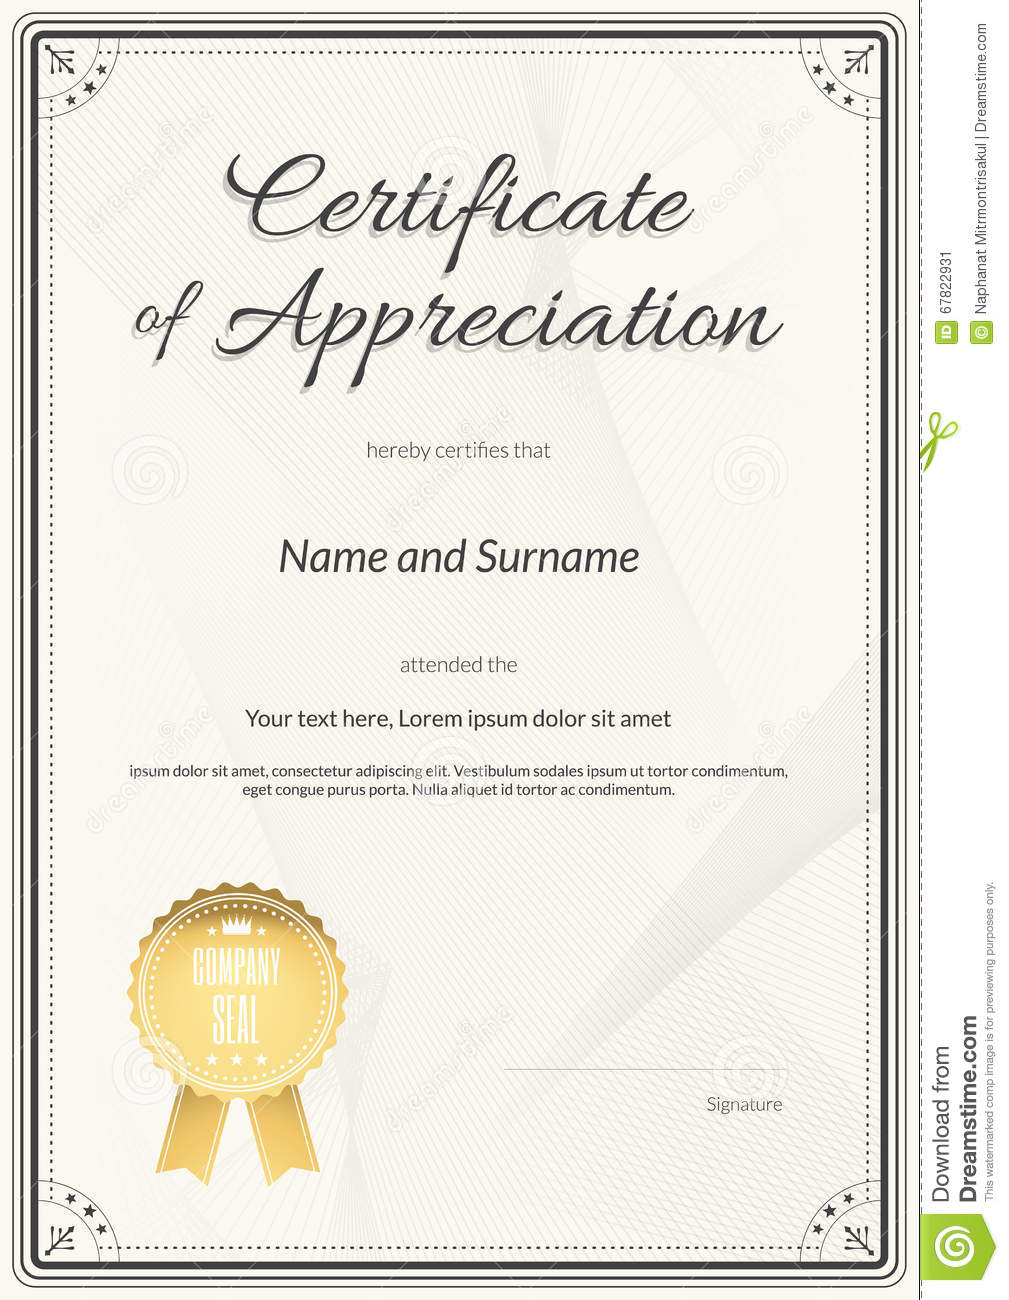 Blank certificates of appreciation templates carlosdelarosavidal blank certificates of appreciation templates yelopaper Choice Image